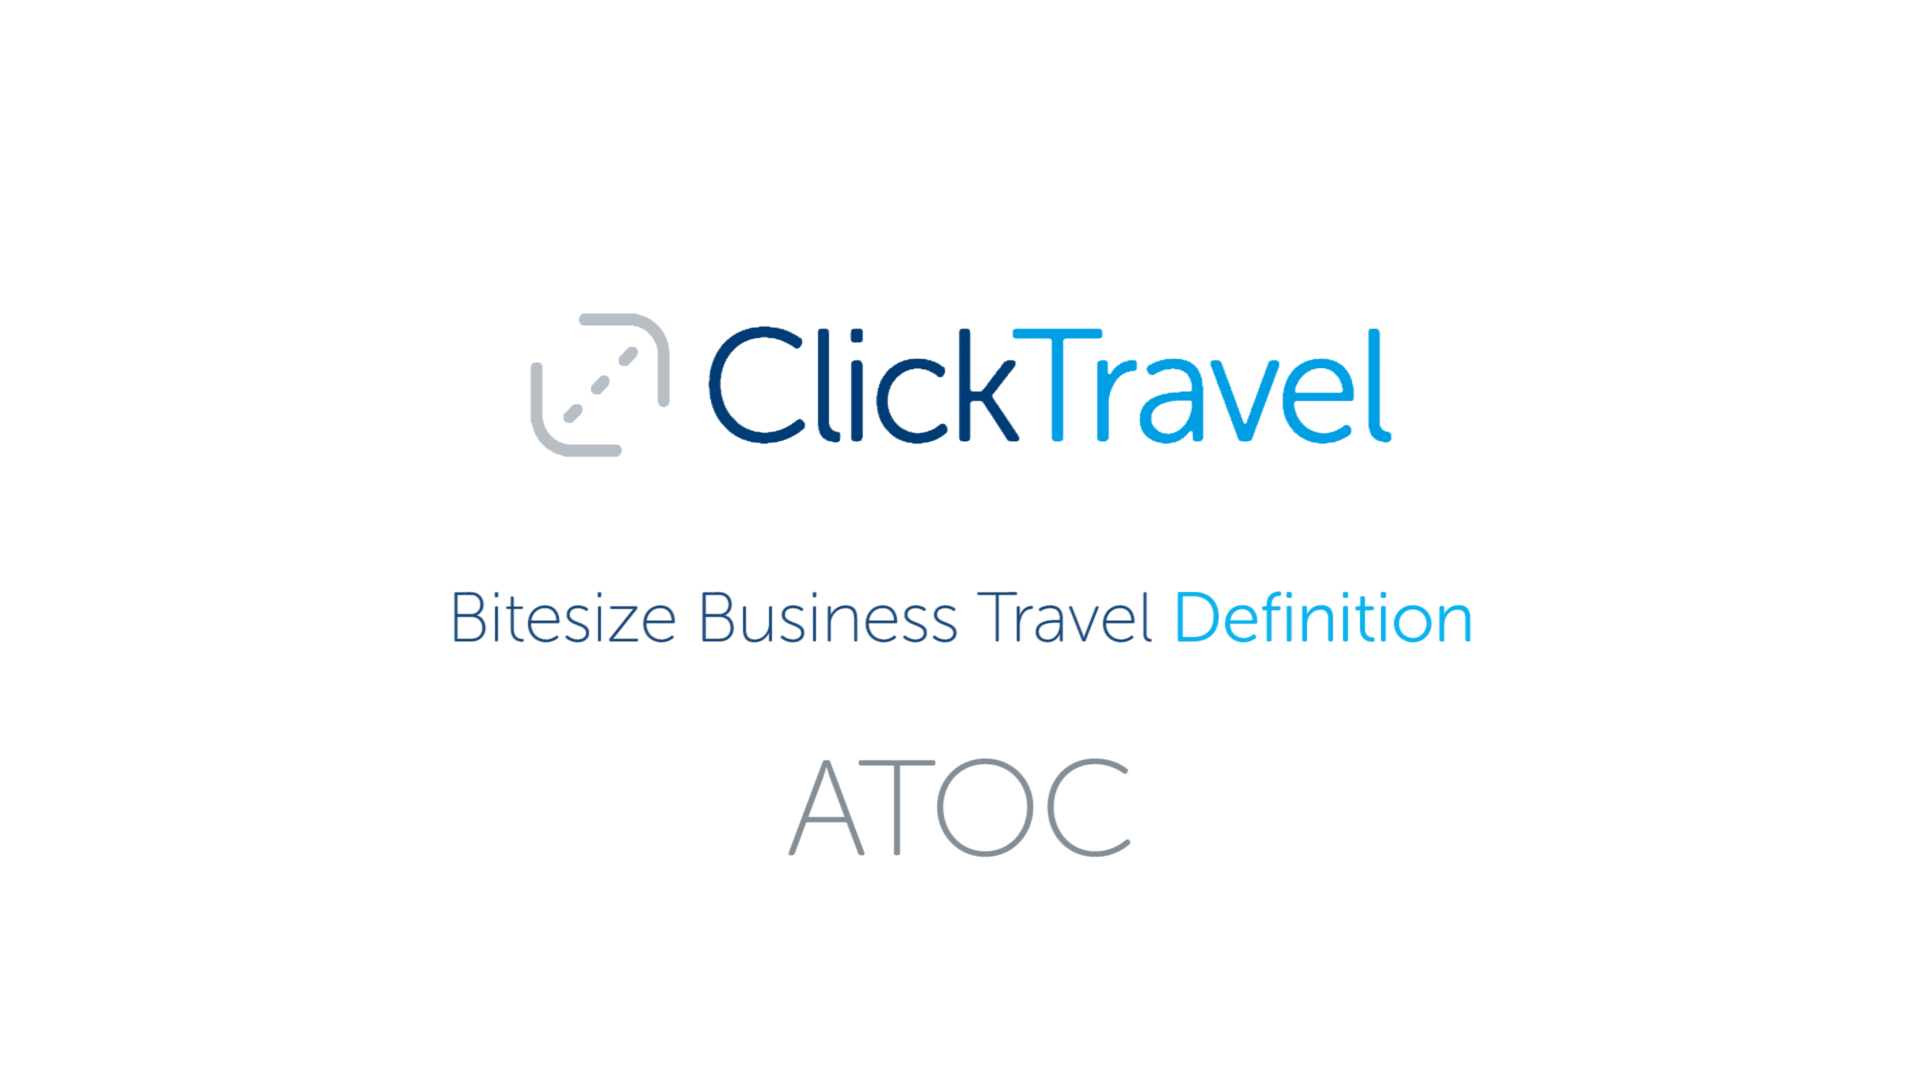 [VIDEO] Bitesize Business Travel Definition: ATOC